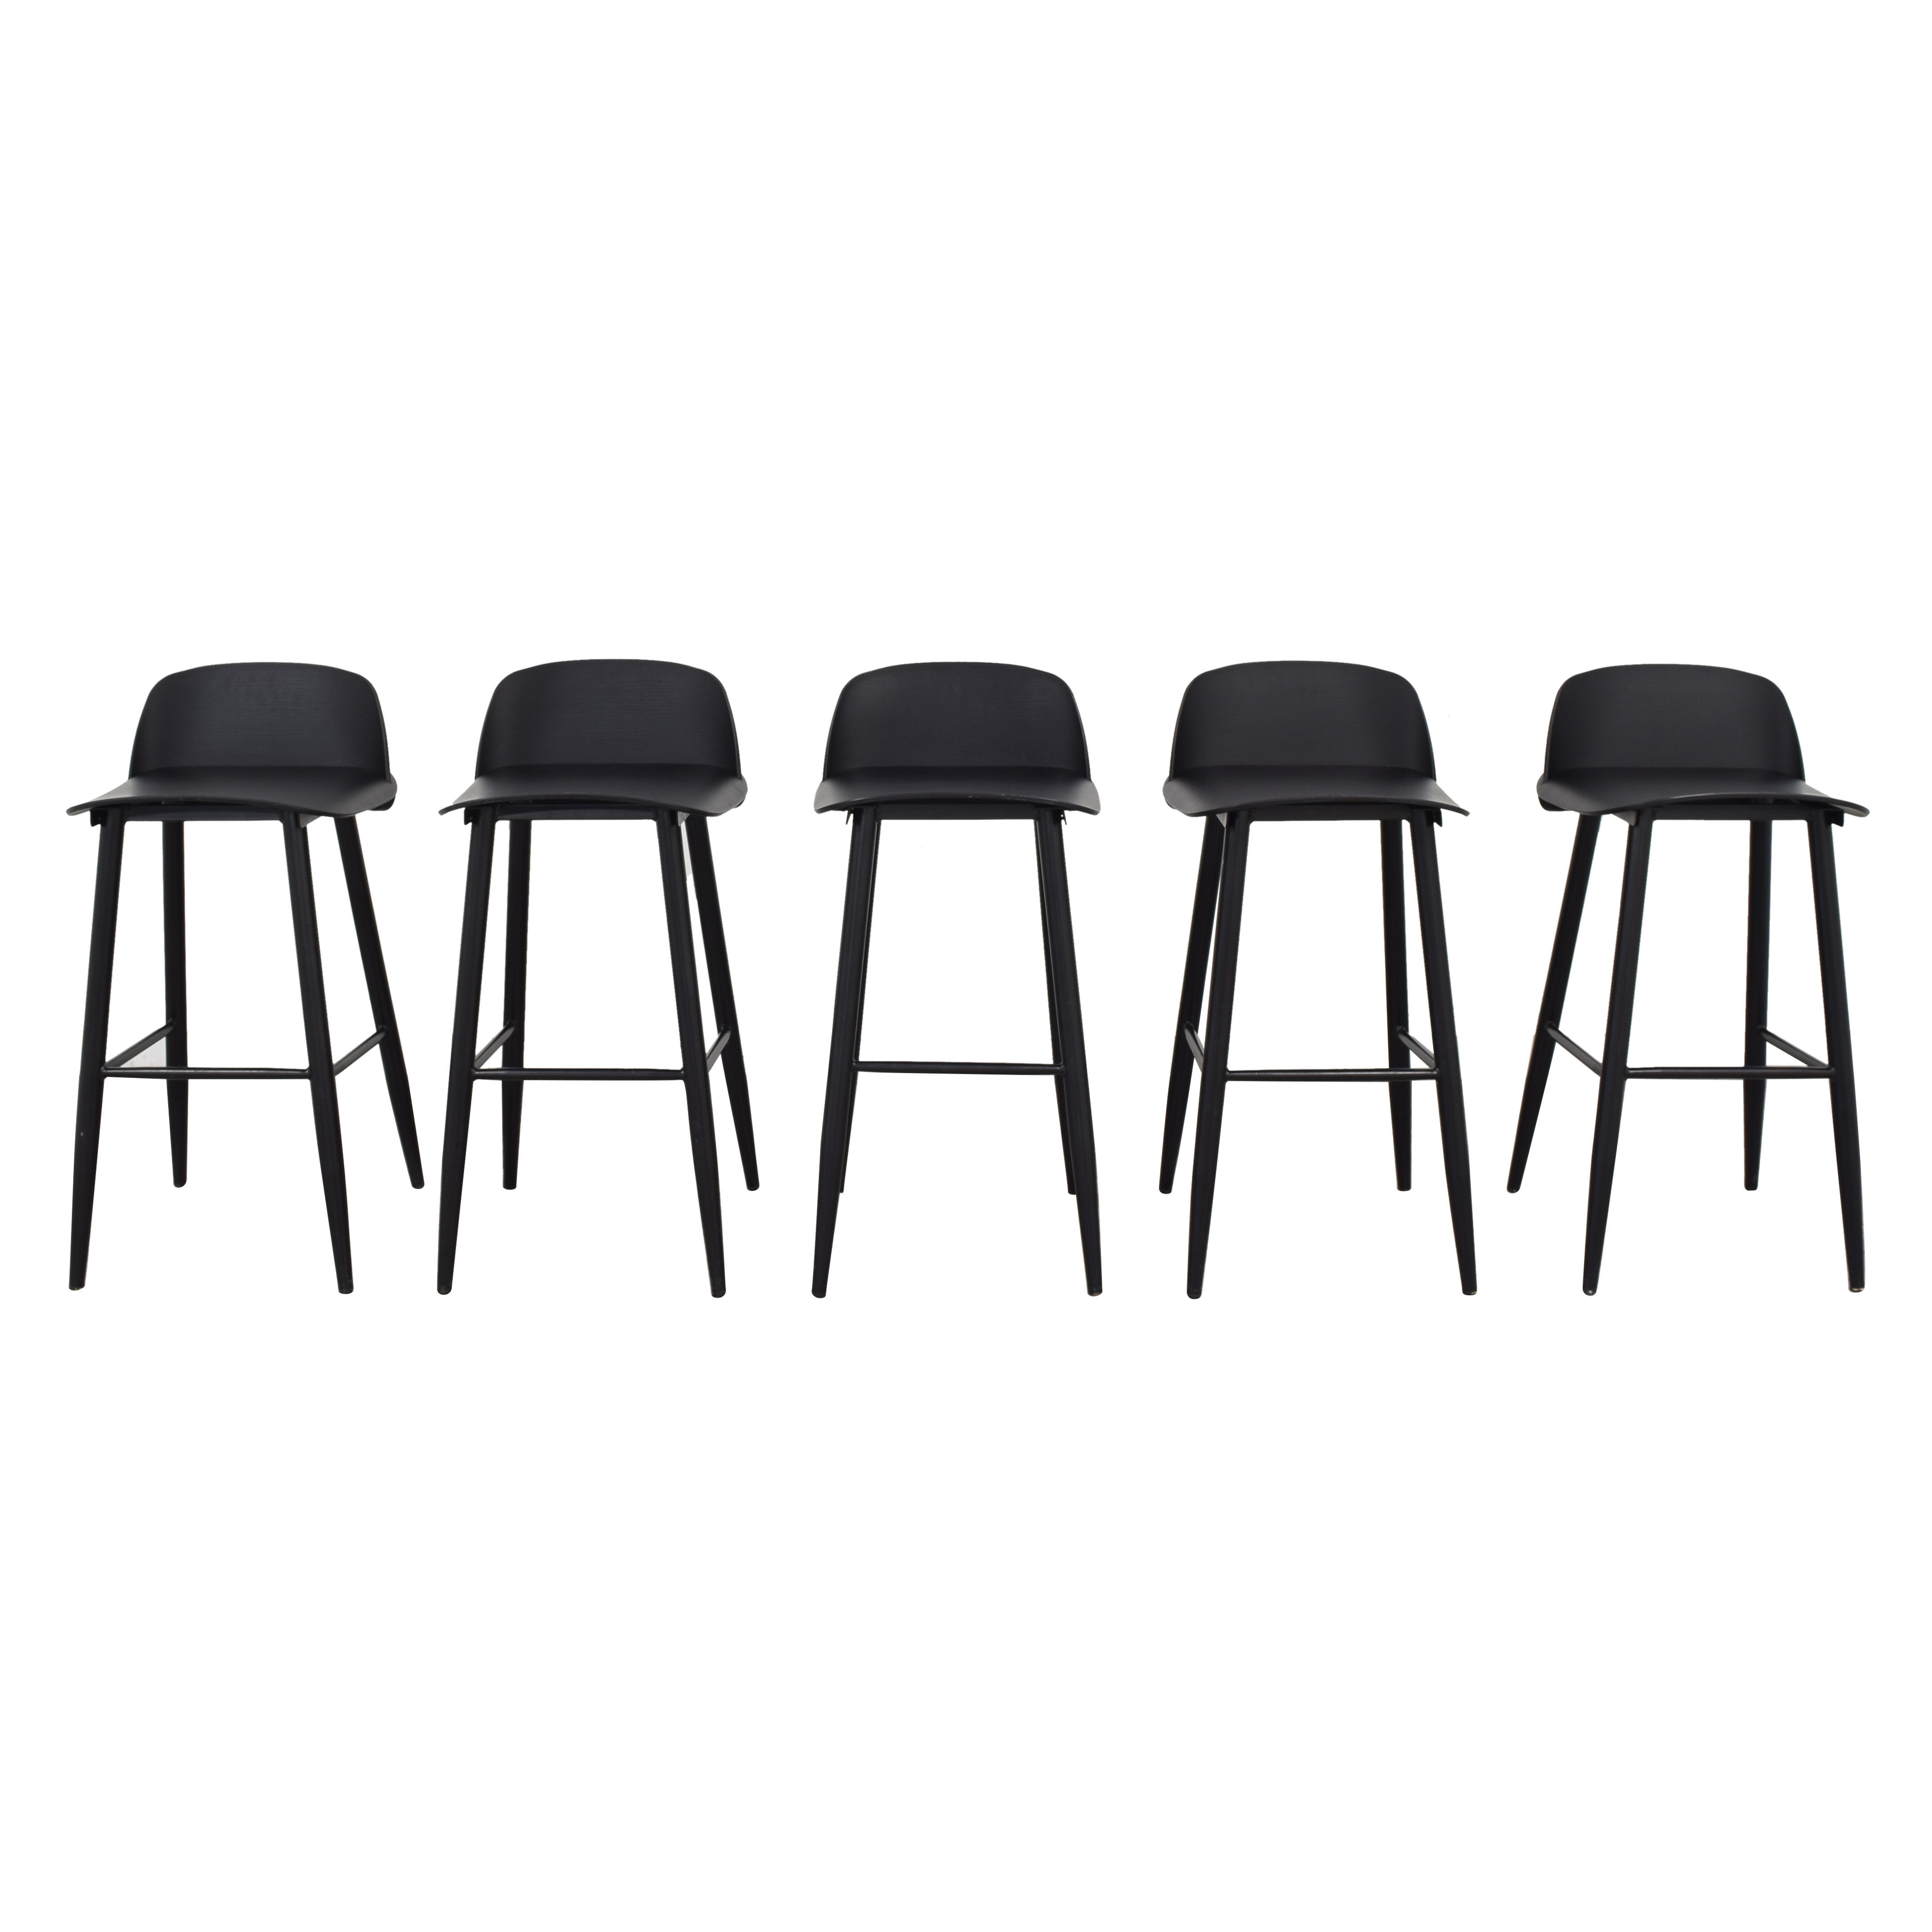 Nerd-Style Replica Bar Stools discount